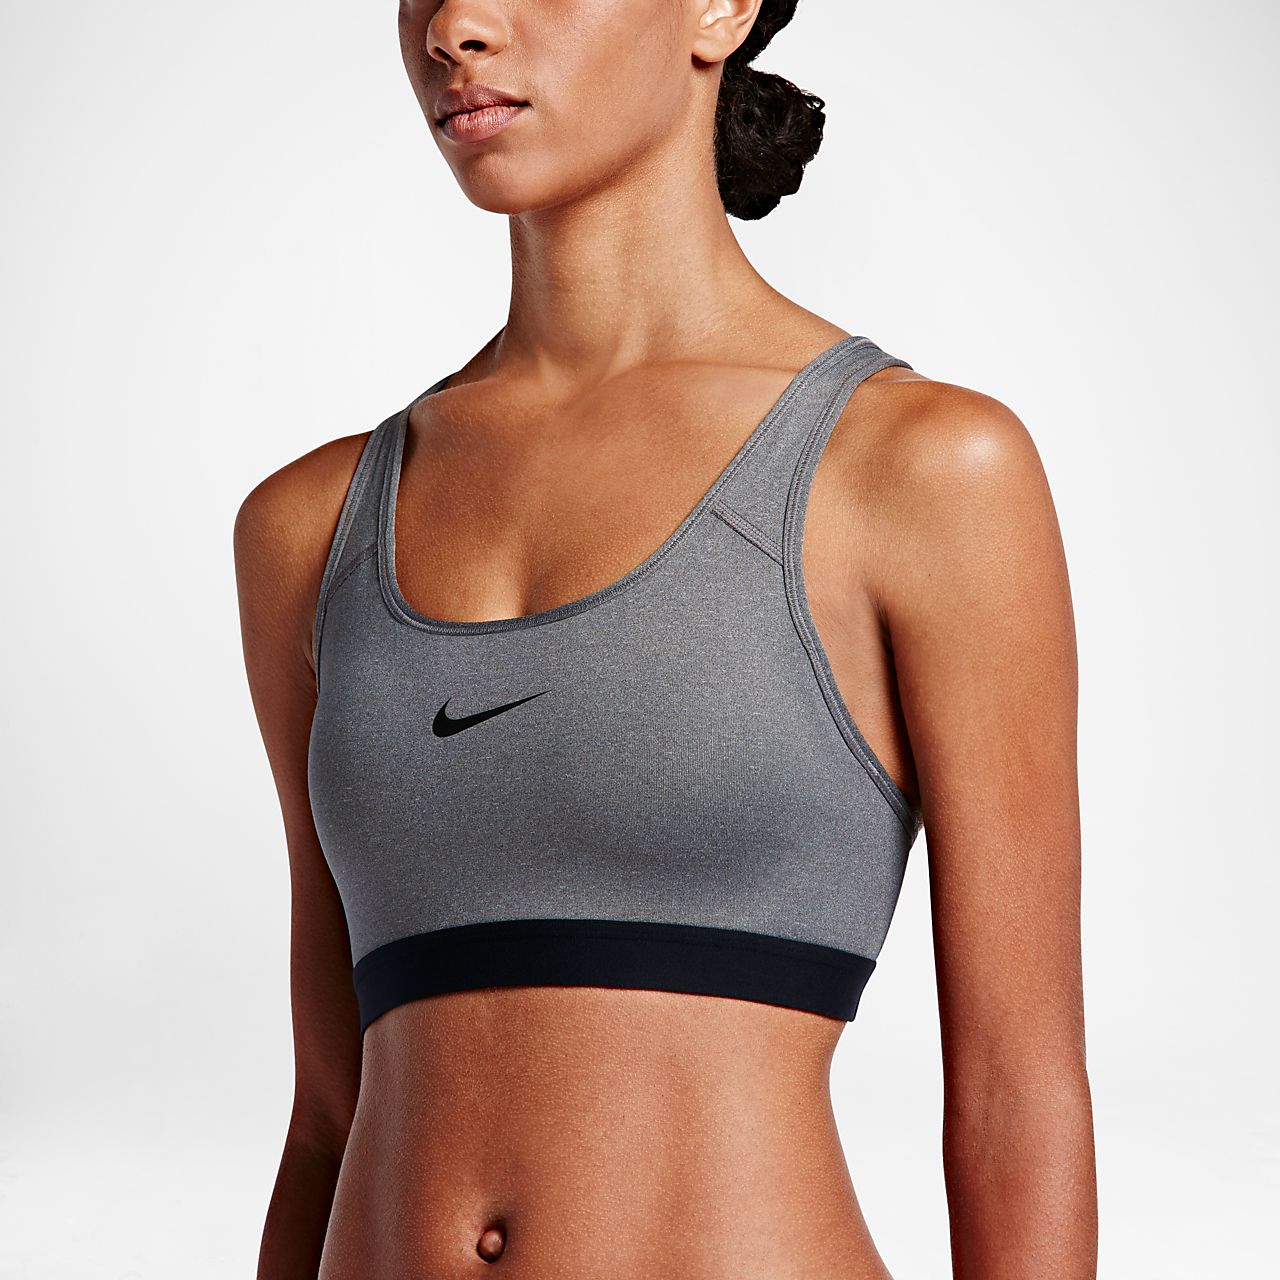 Women's Medium Support Sports Bra. $30. Nike Classic Padded